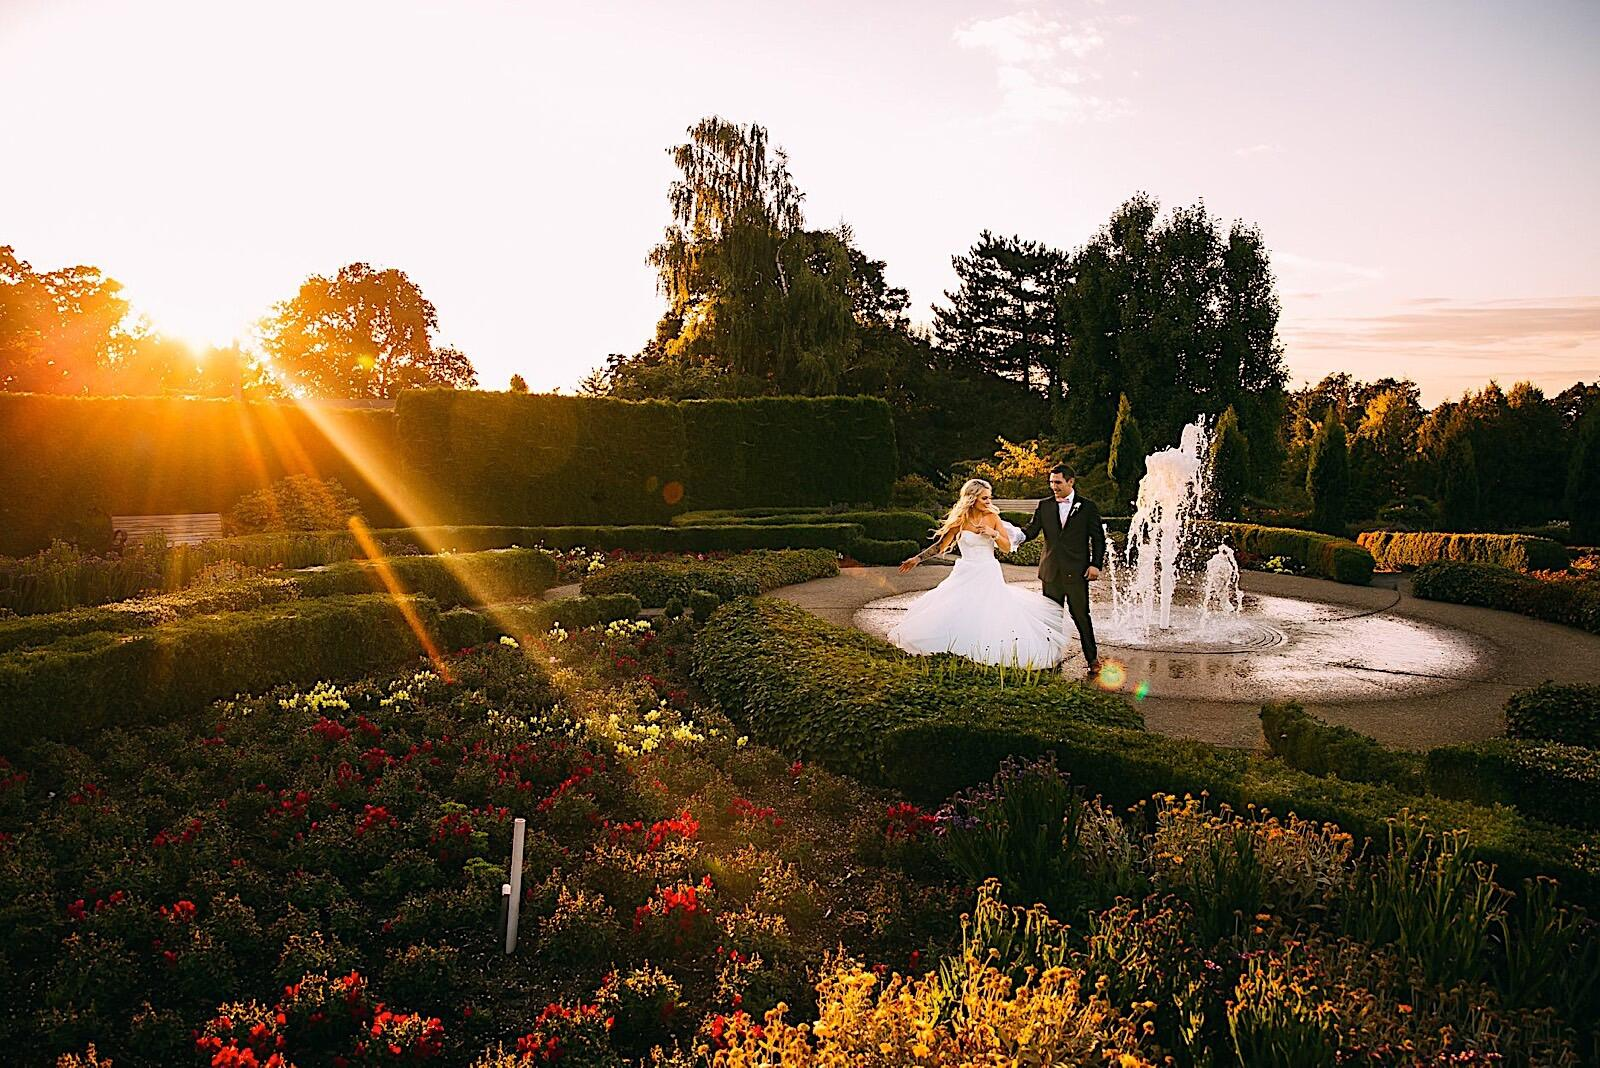 Bride and groom by a fountain in a garden